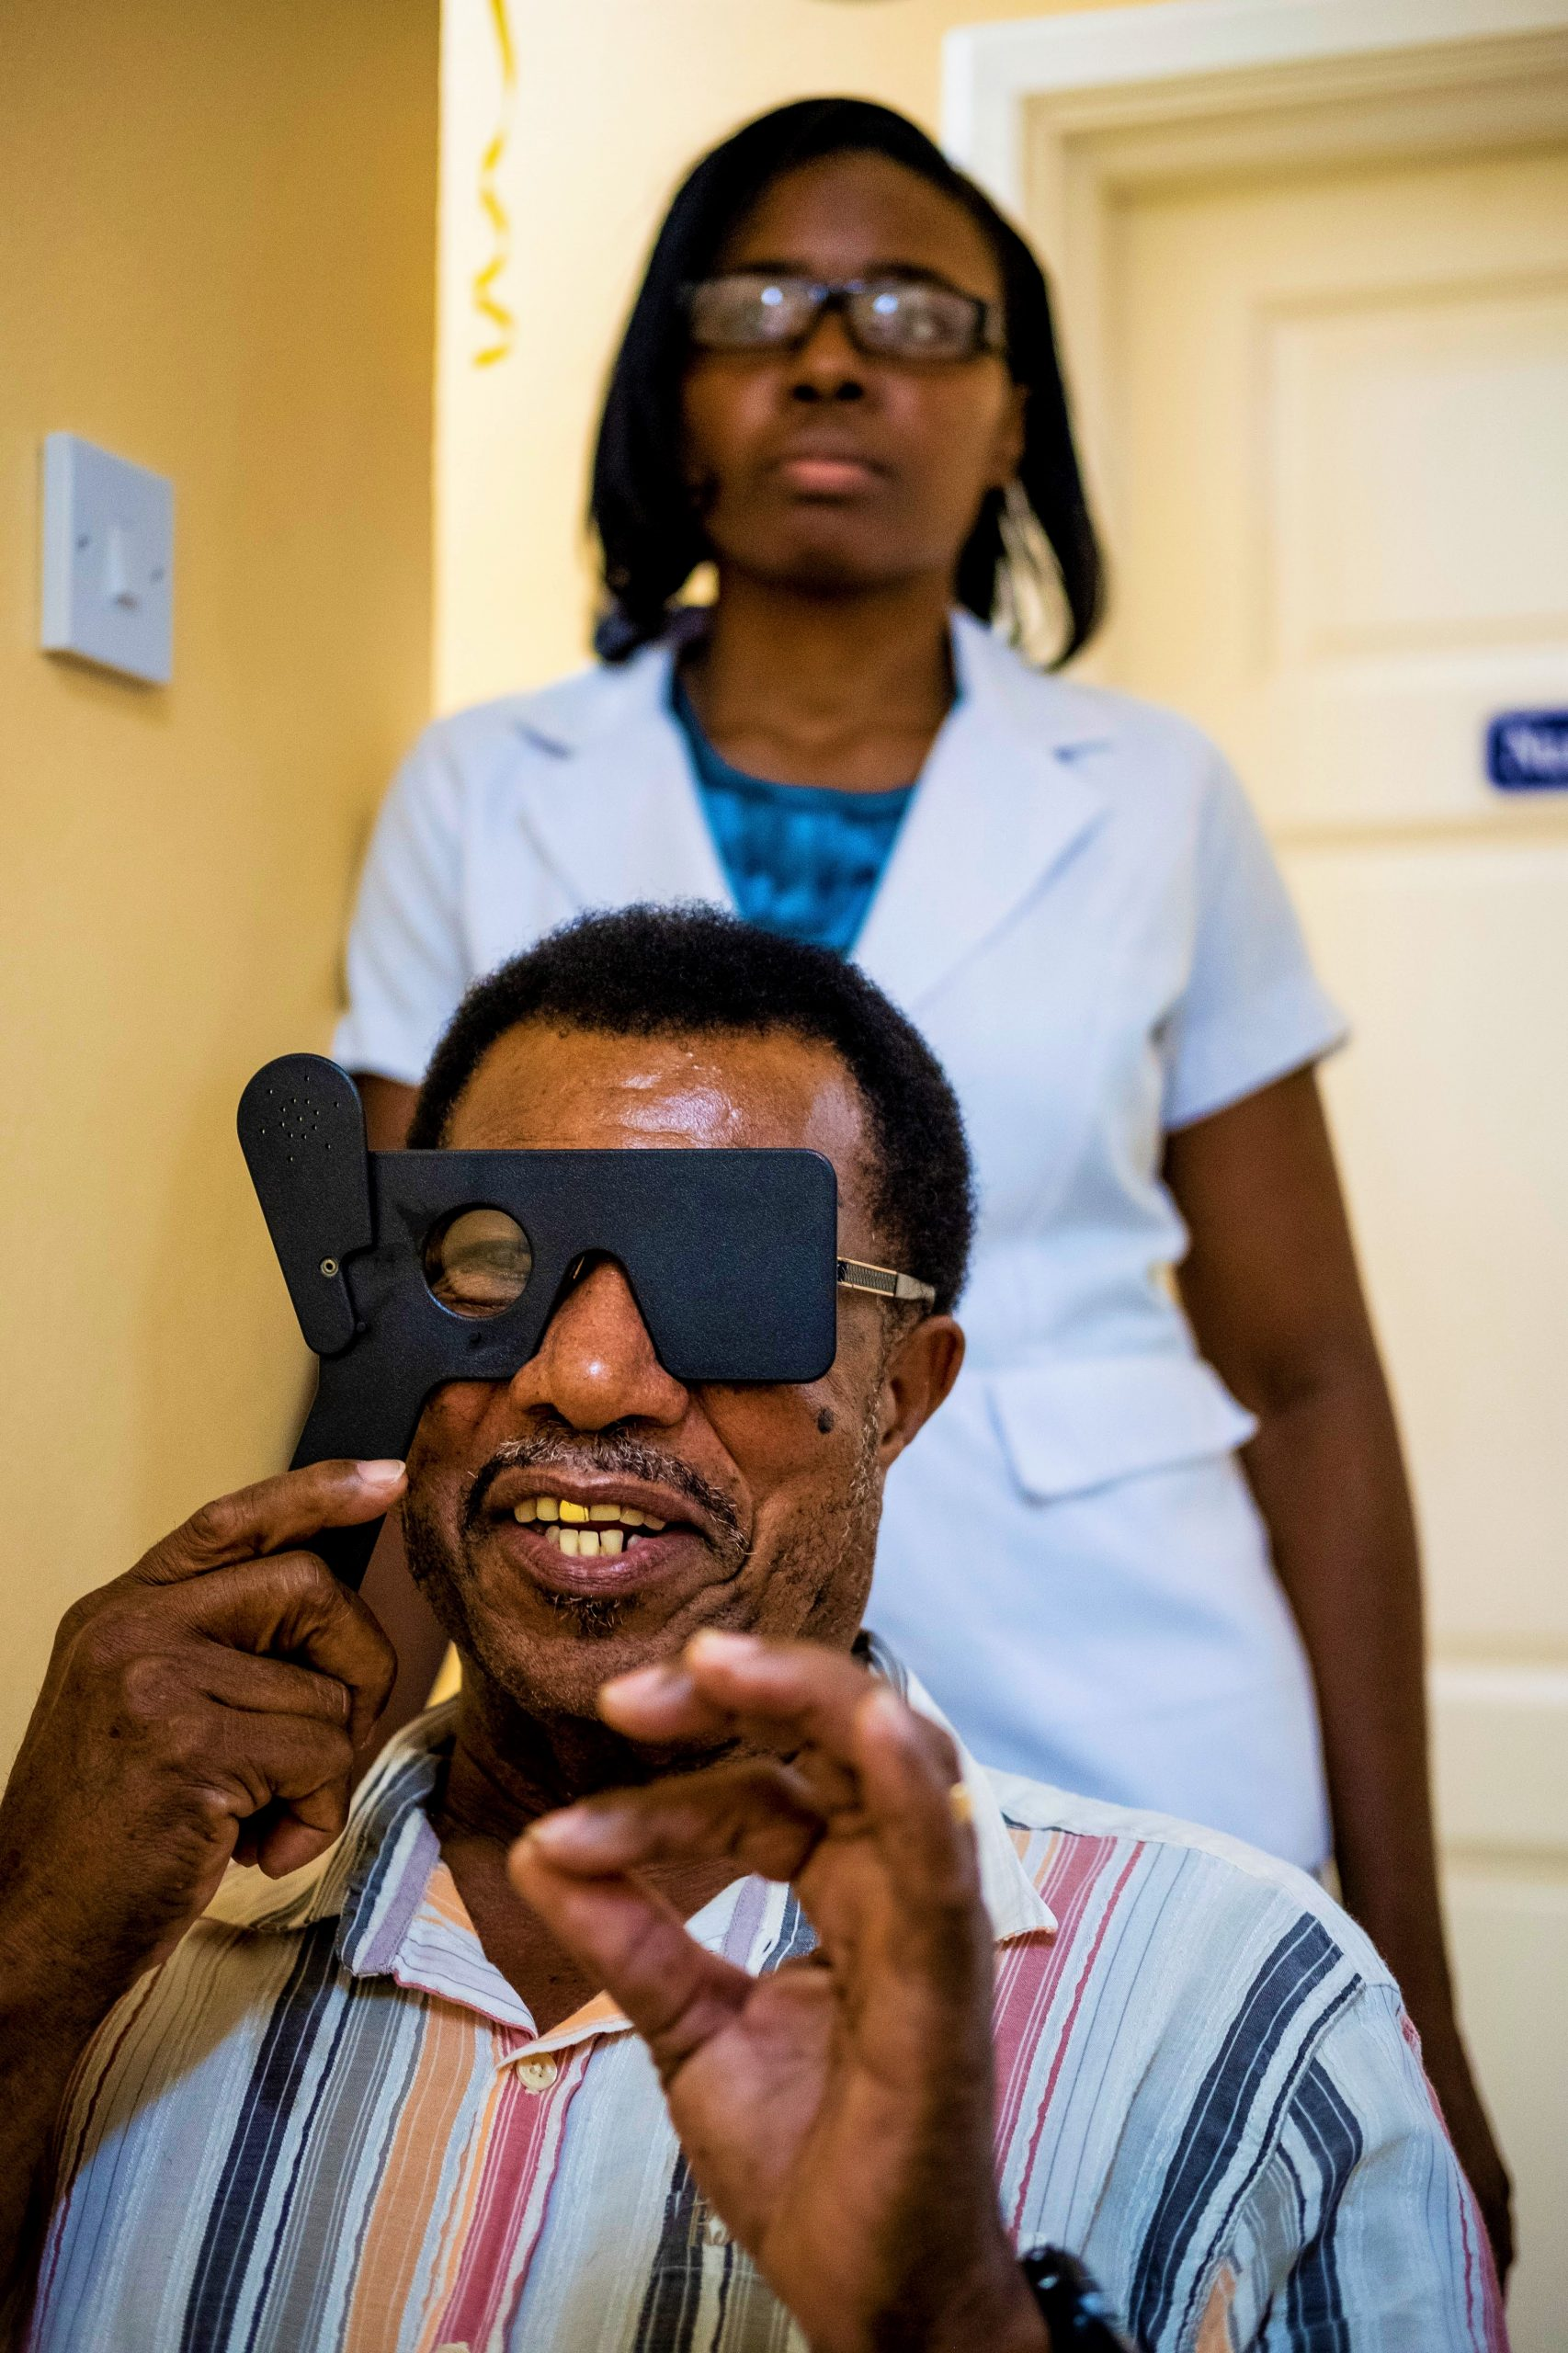 A man in St. Lucia  checks his vision through a portable phoropter